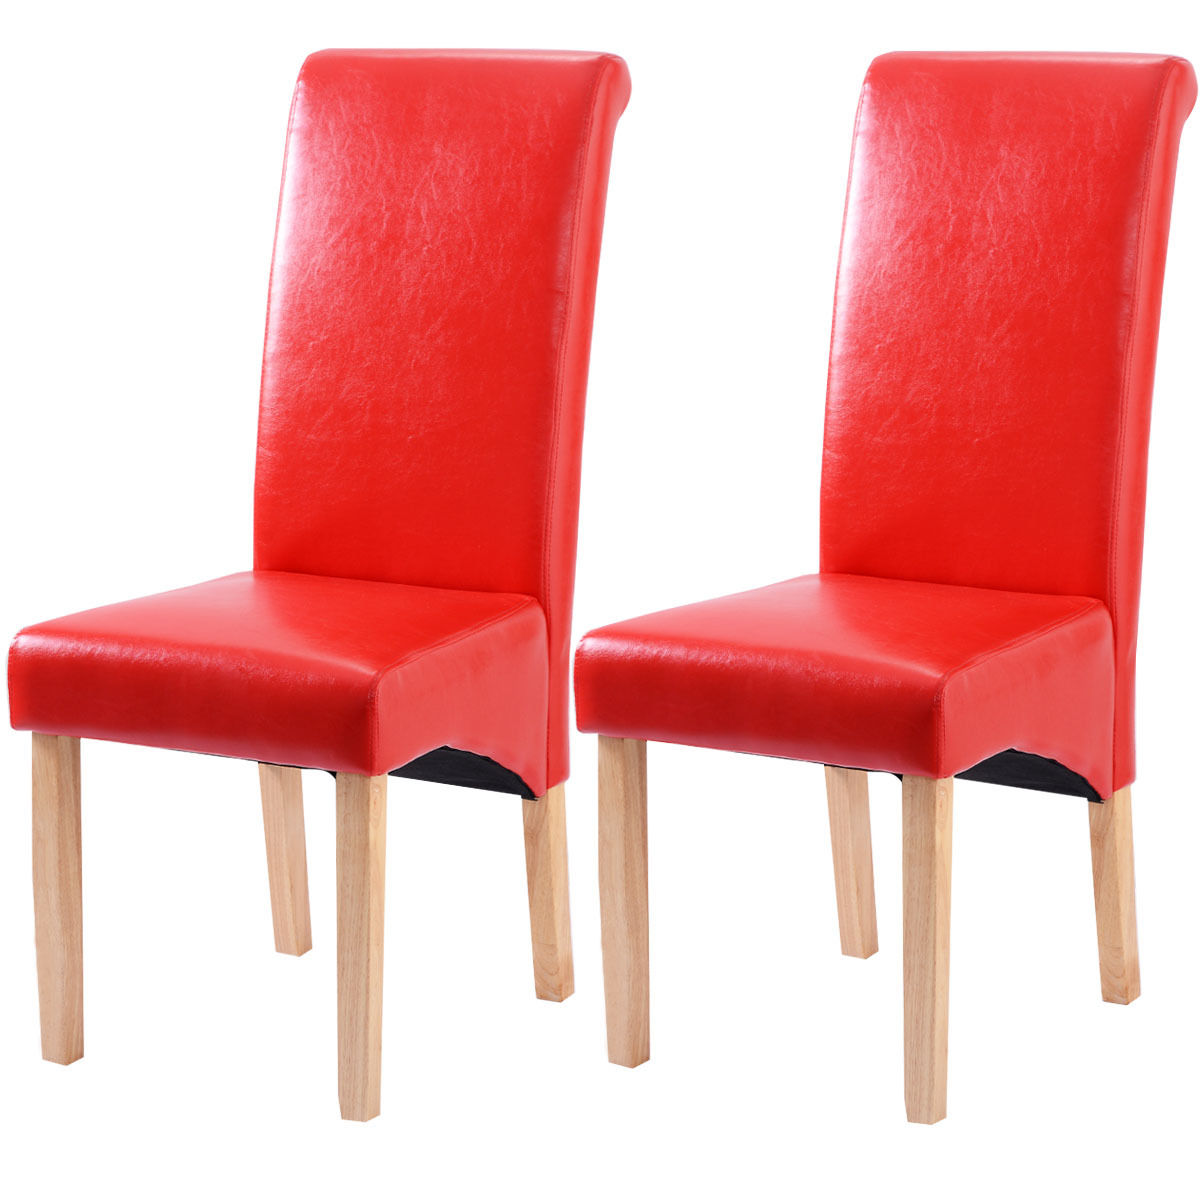 Set of 2 Four Colors Contemporary Dining Chairs